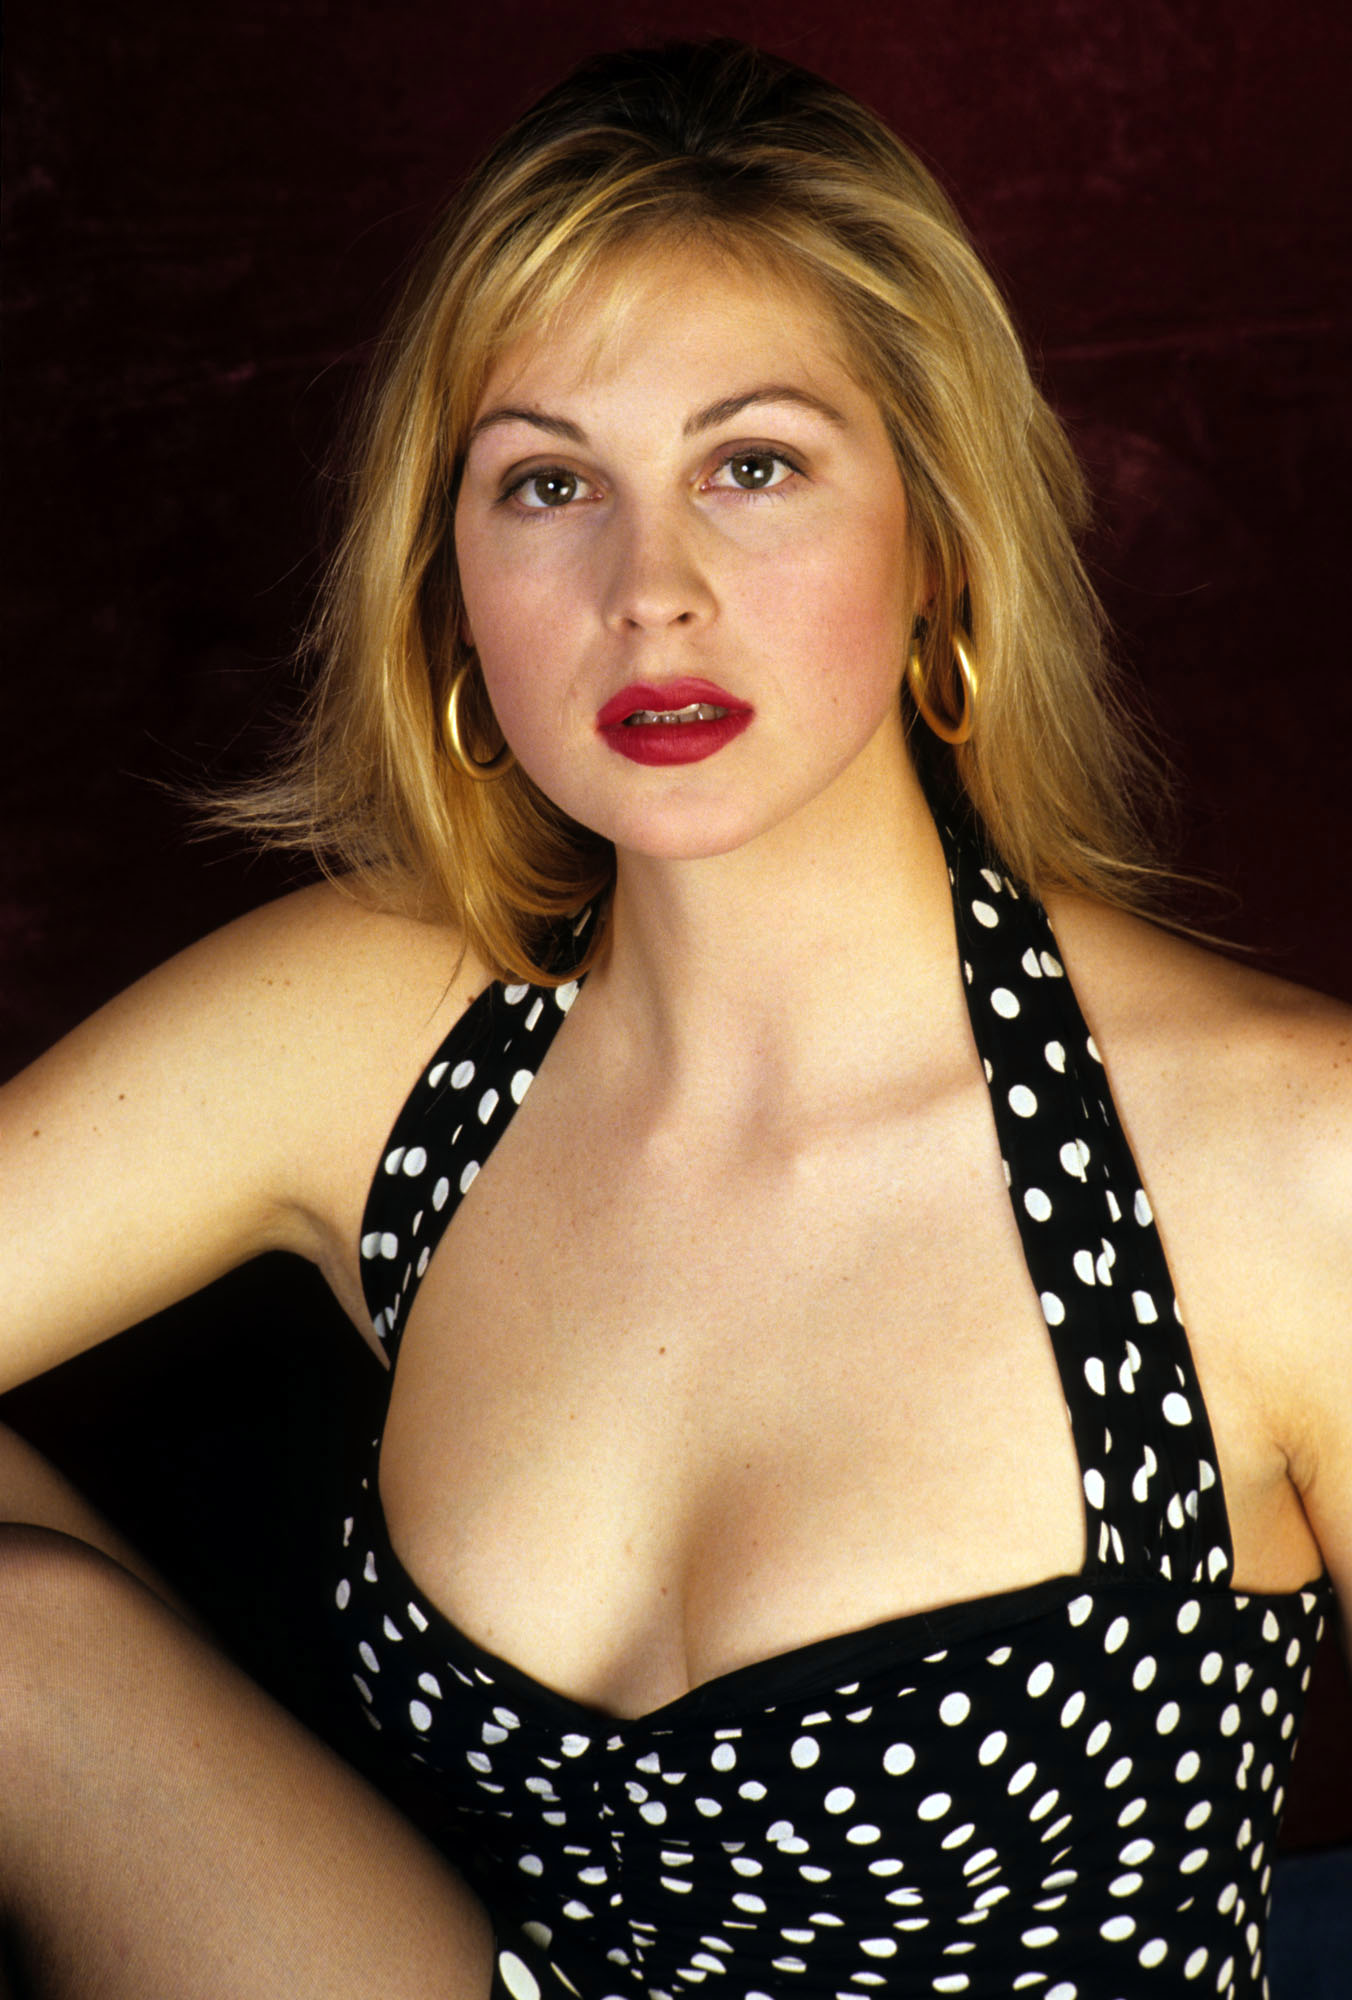 Kelly Rutherford photo 23 of 111 pics, wallpaper - photo ...